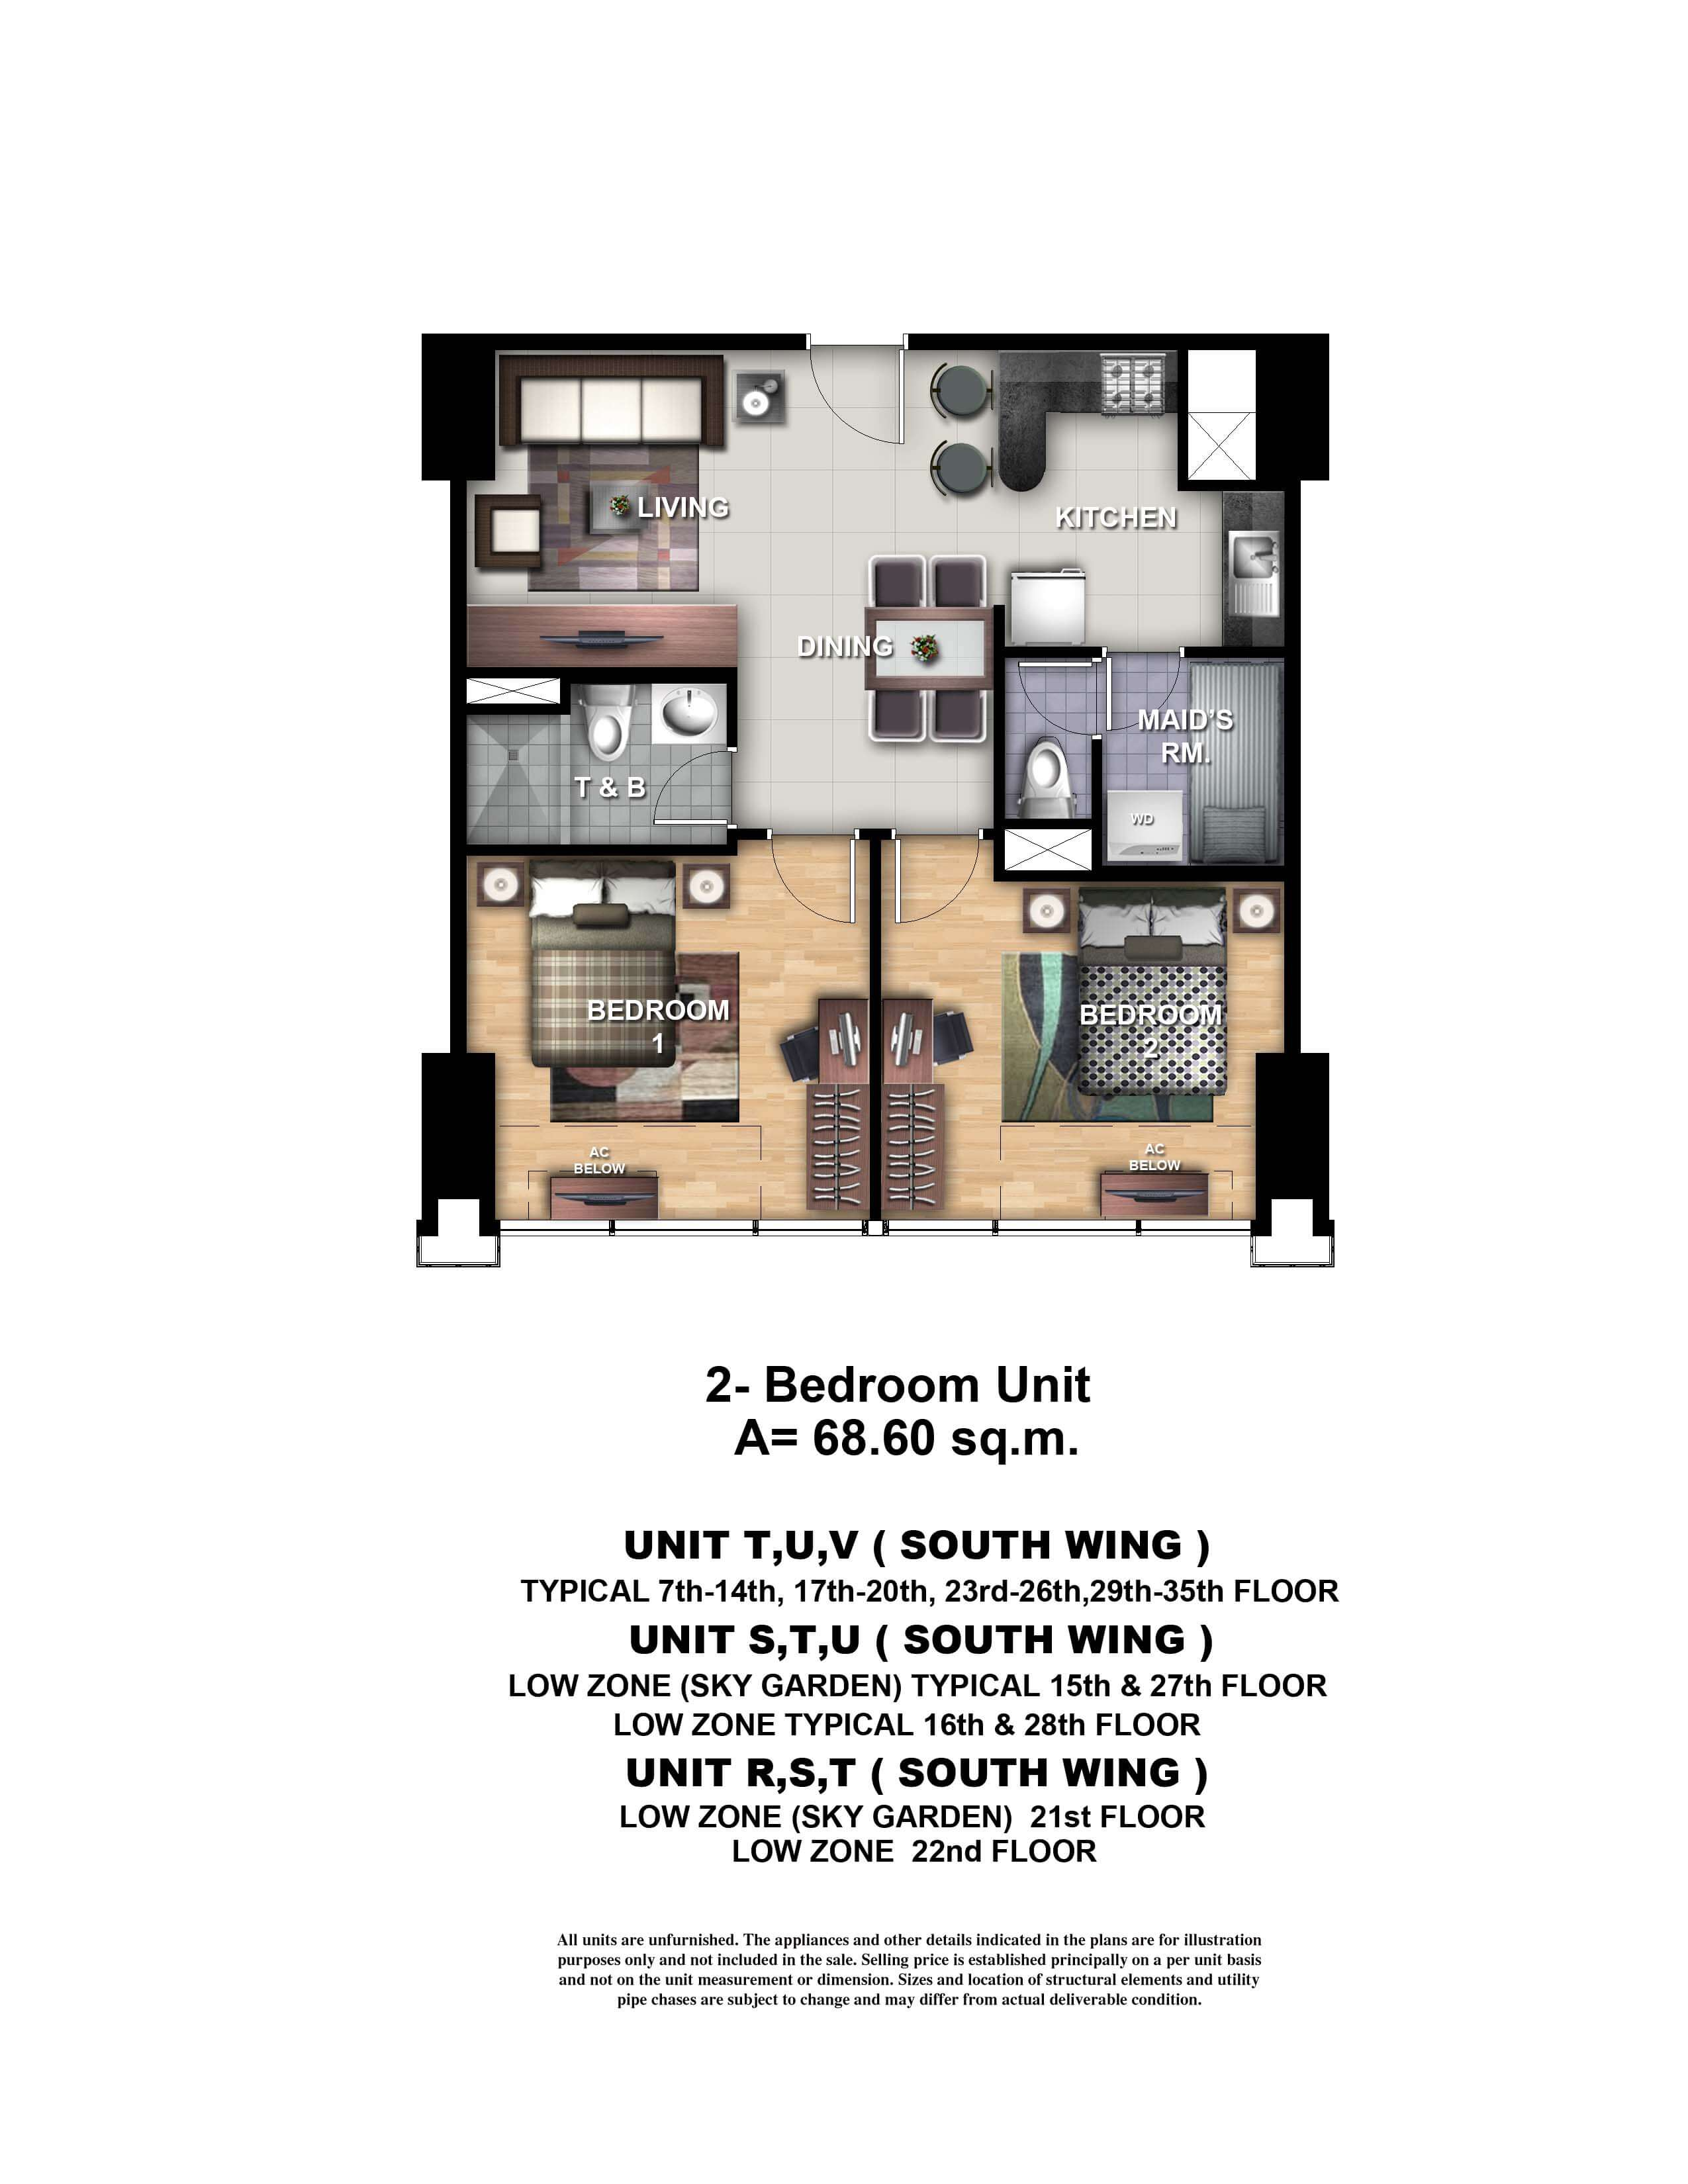 One Uptown Residence Unit Layout 2BR (68.6sqm)